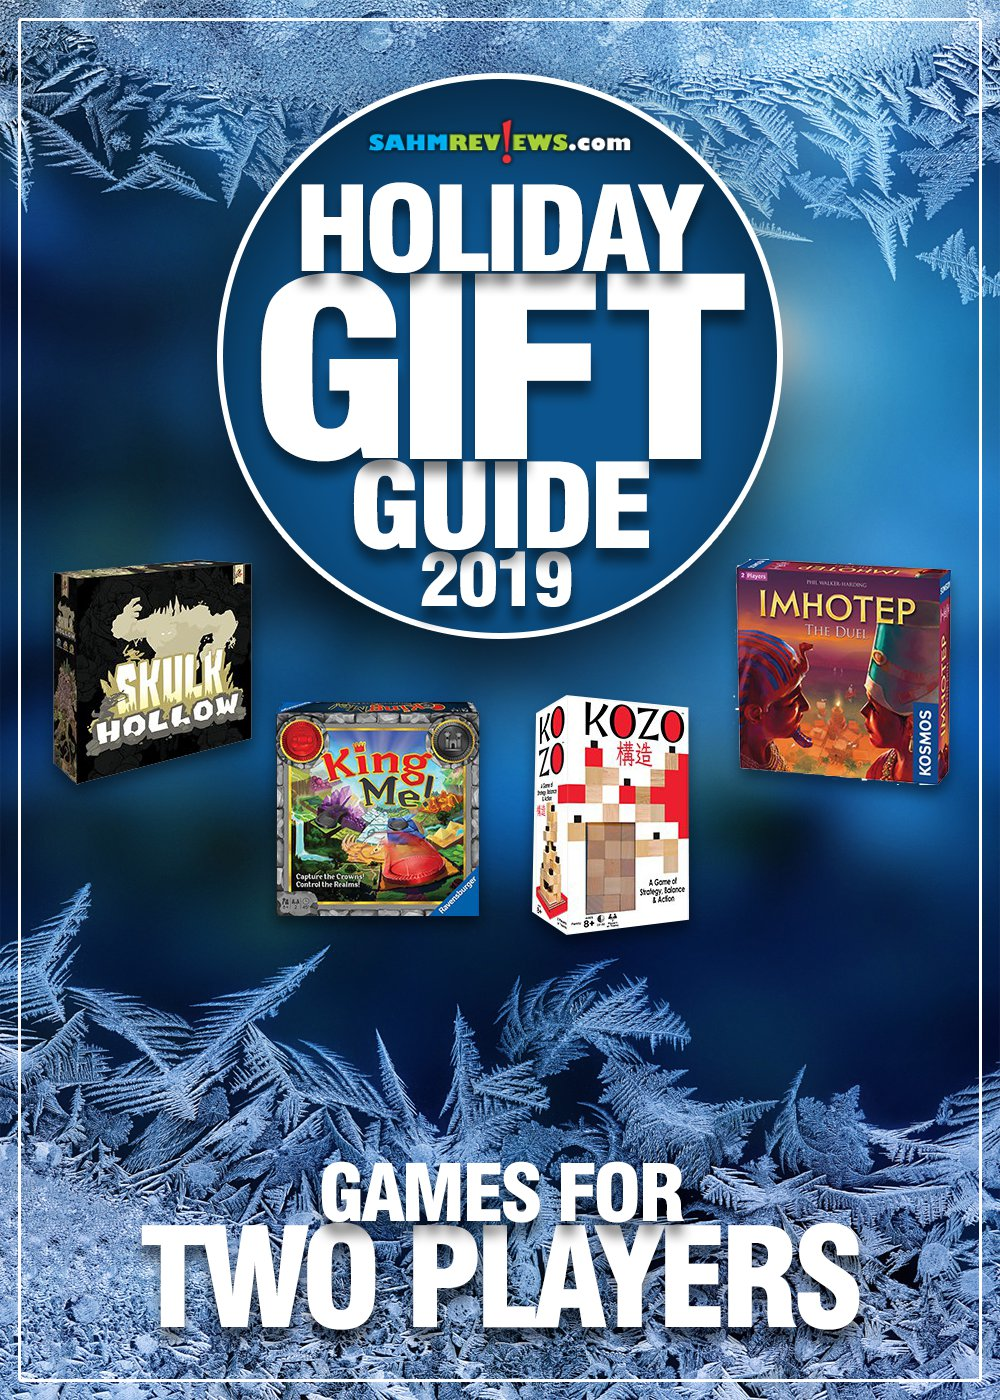 This list of 2-player games is perfect for when you want to play with just one opponent. See which ones are most popular in our Holiday Gift Guide! - SahmReviews.com